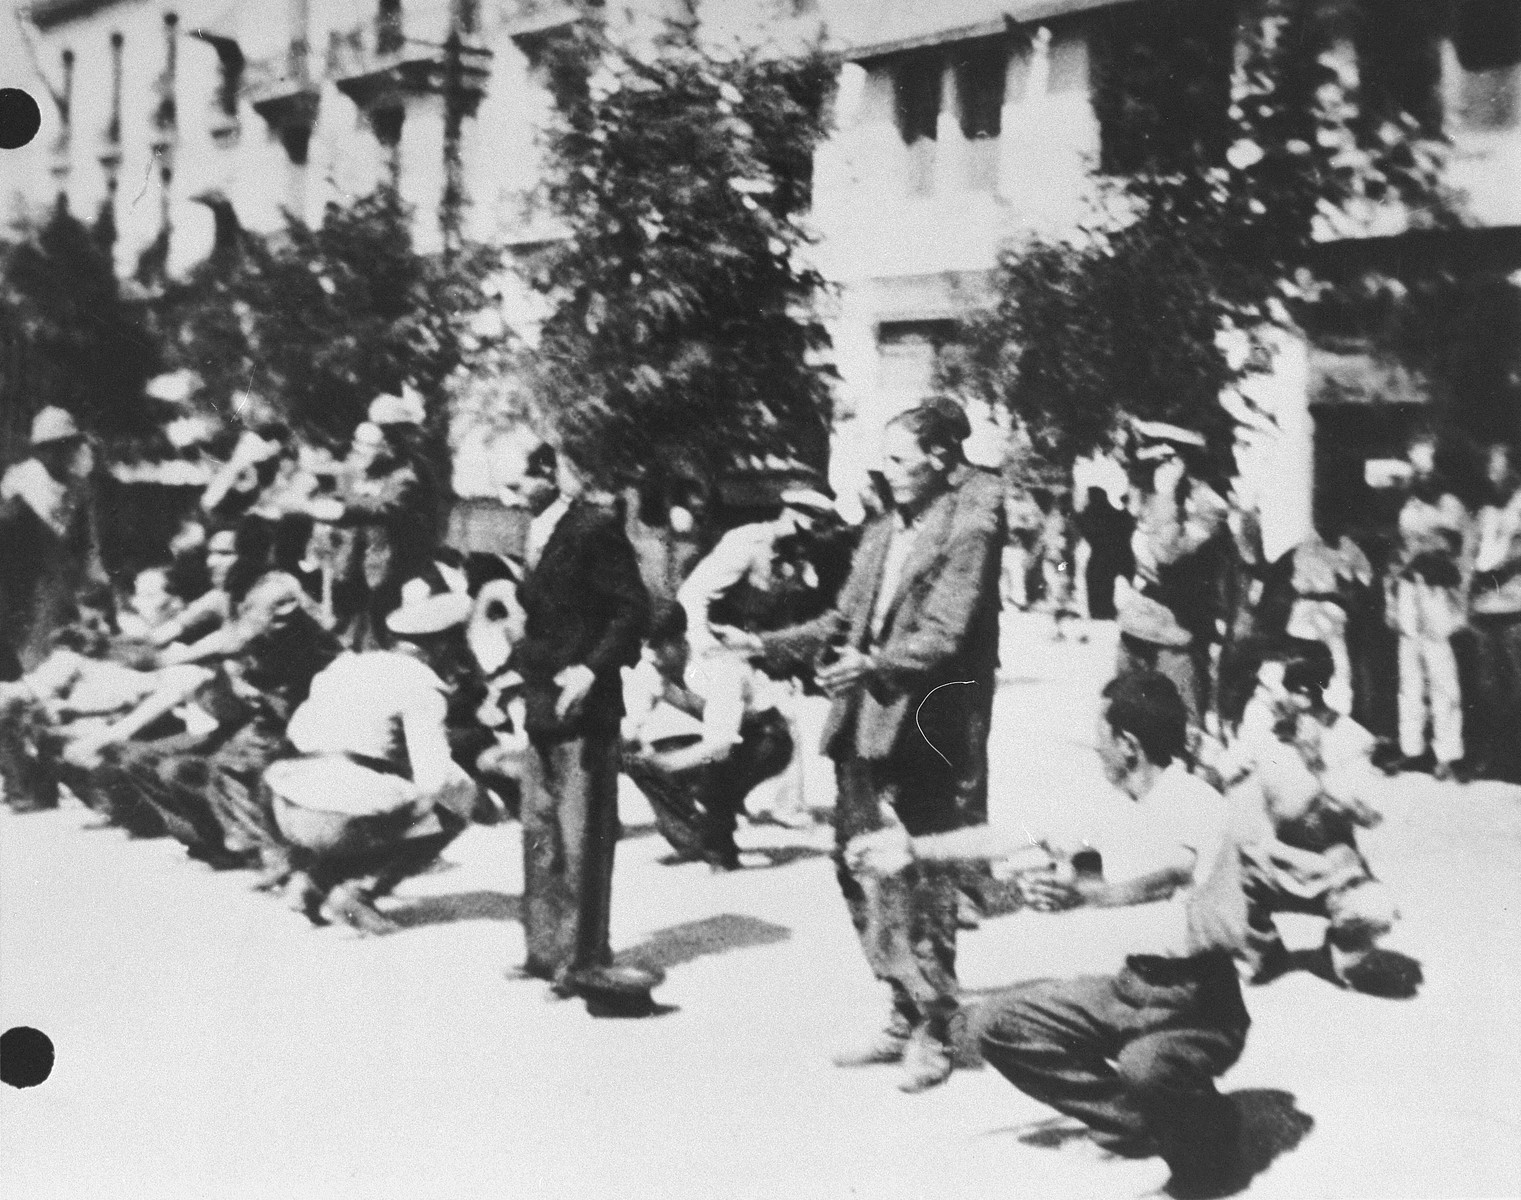 German soldiers force Jews assembled on Eleftheria (Freedom) Square to perform calisthenics.